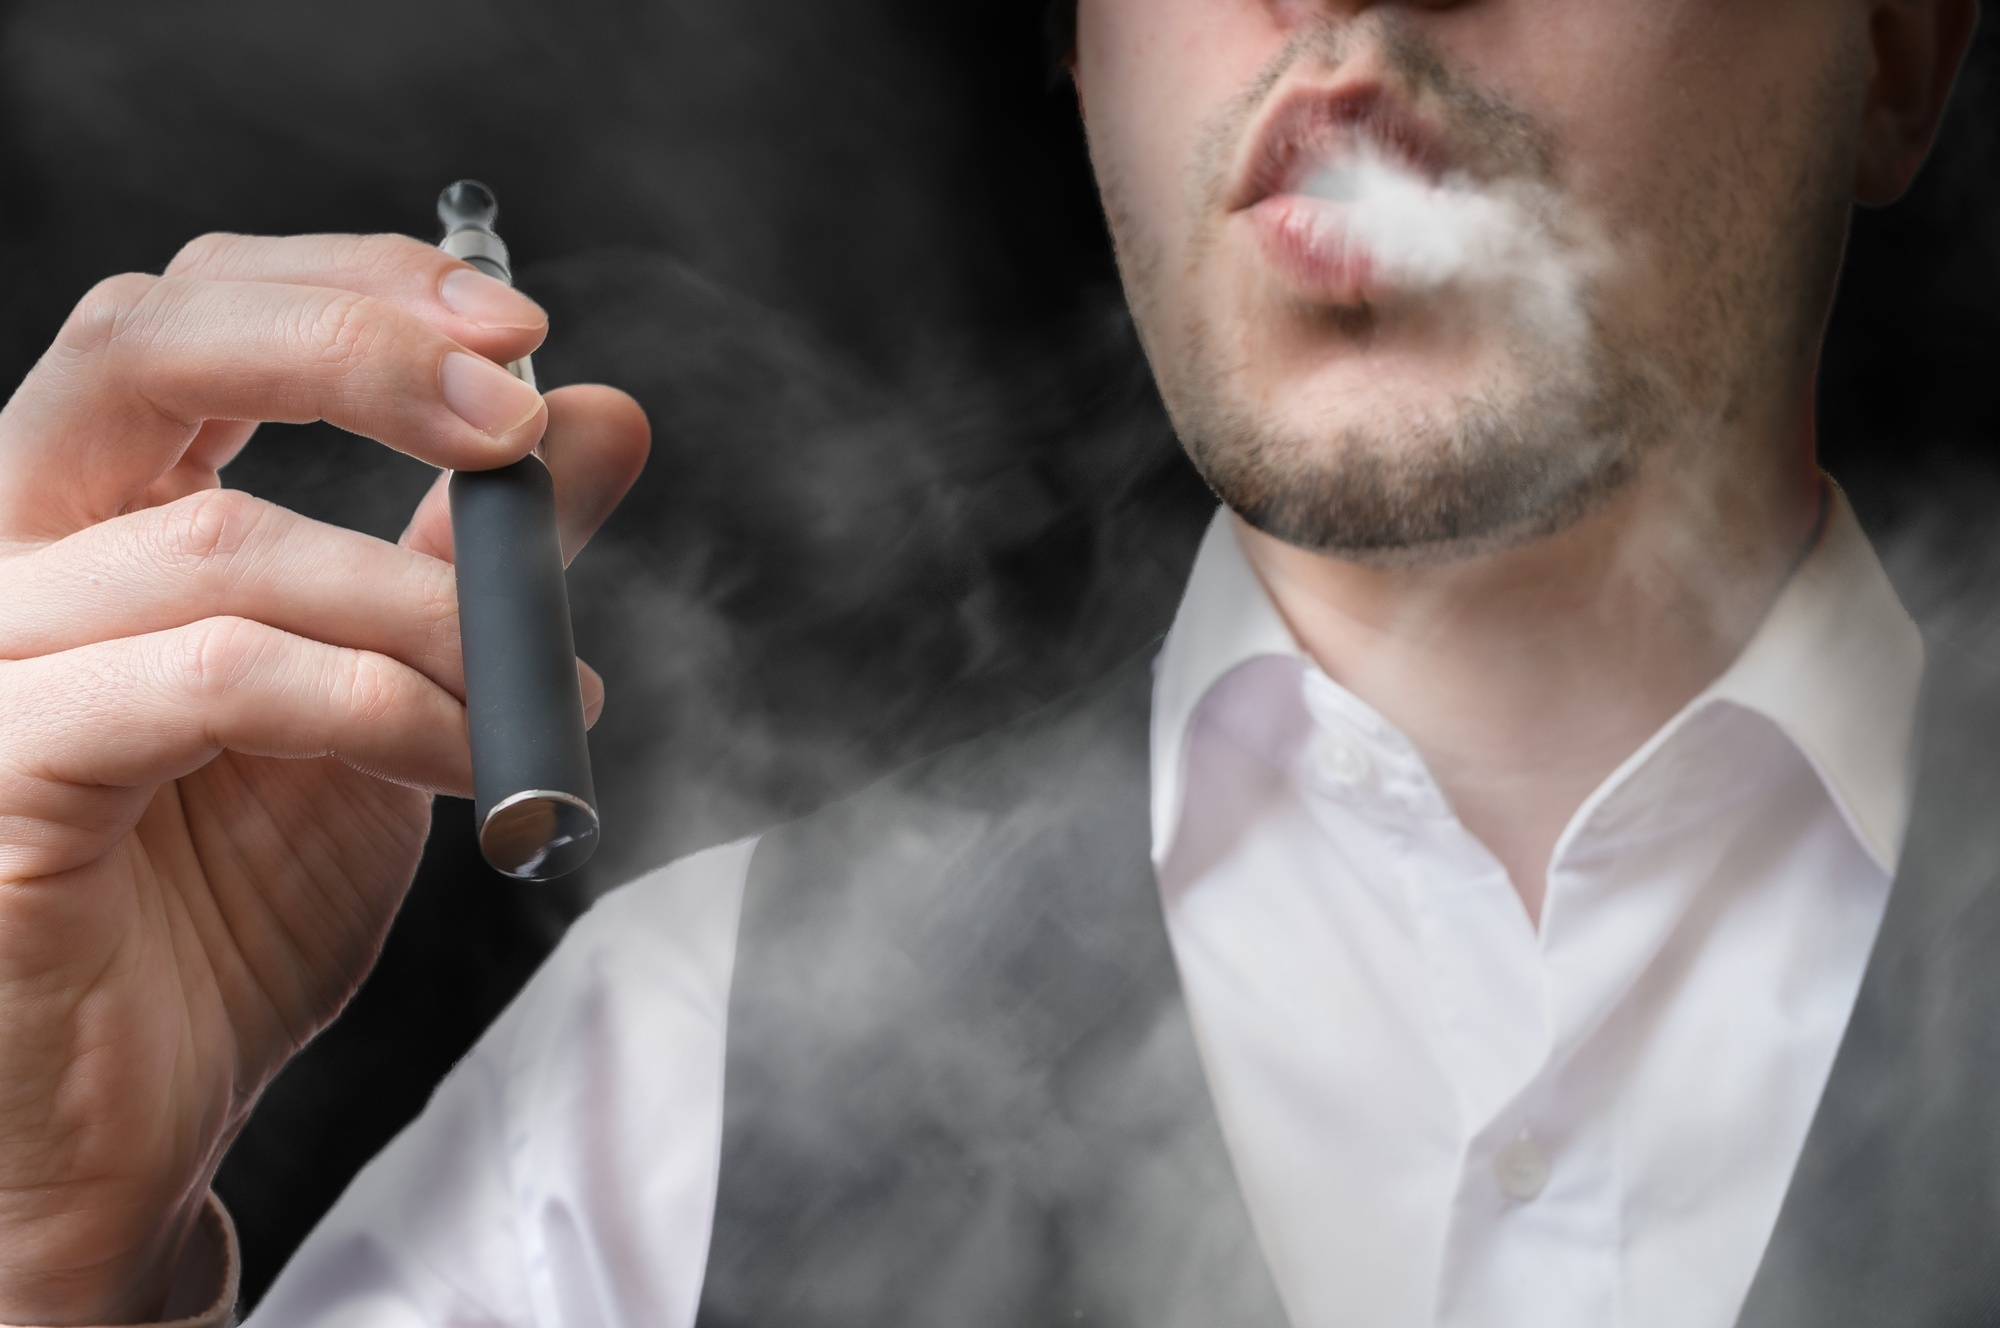 Vaping Fact Guide for Parents